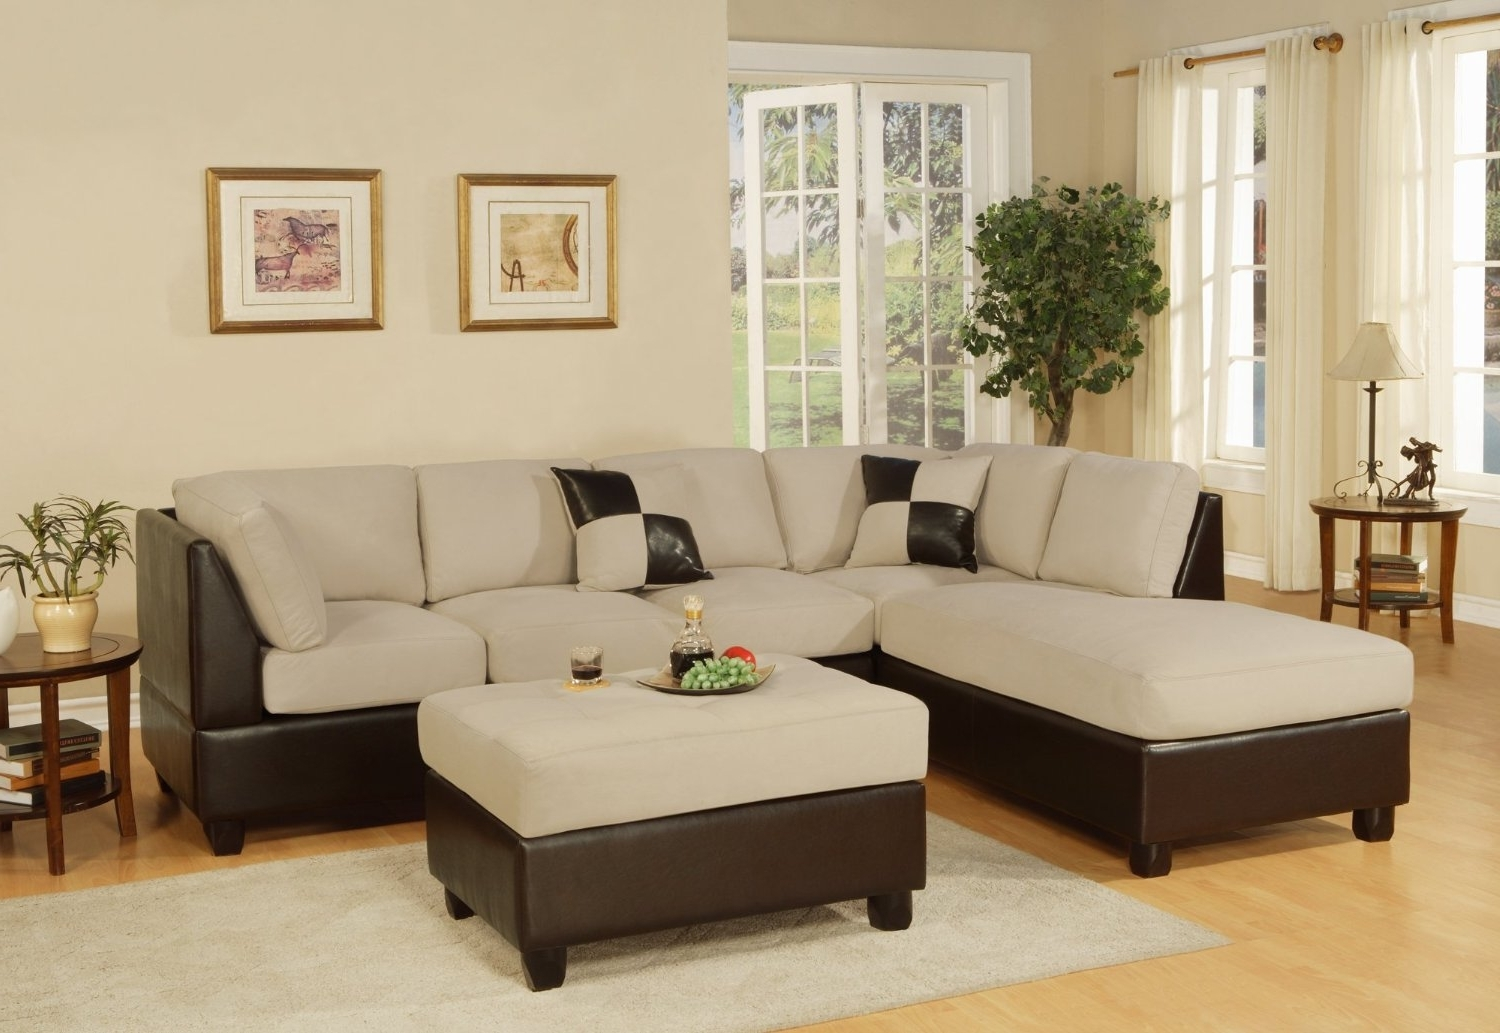 Erie Pa Sectional Sofas With Trendy Furniture : Sectional Sofa 80 X 80 Corner Sofa Extension Sectional (View 6 of 20)